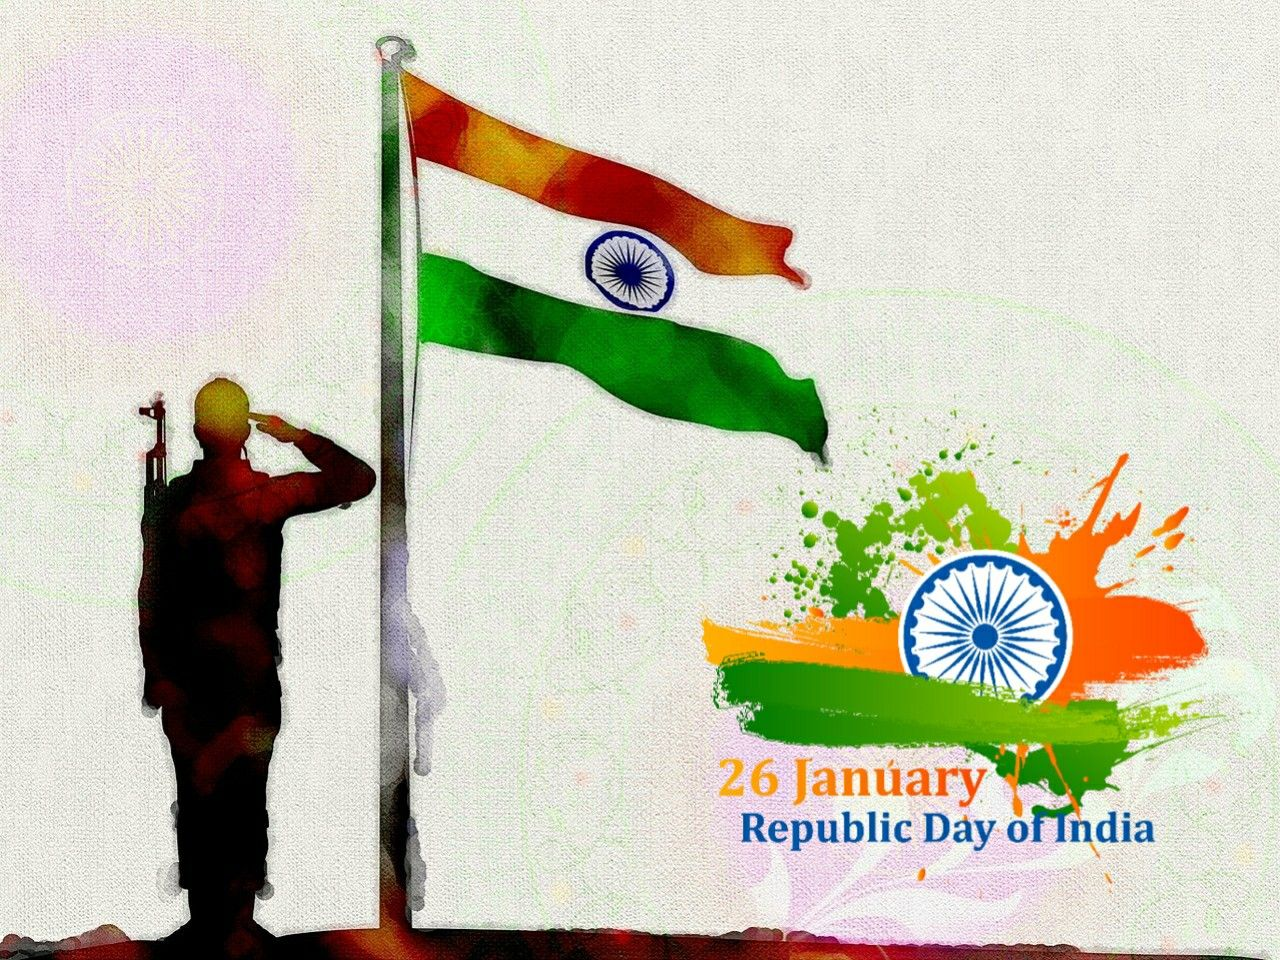 26 January 2021 Images Happy Republic Day Photos Quotes Indian Flag 100dotcom In 2021 Republic Day Indian Flag Republic Day India Indian flag pic 26 january 2021